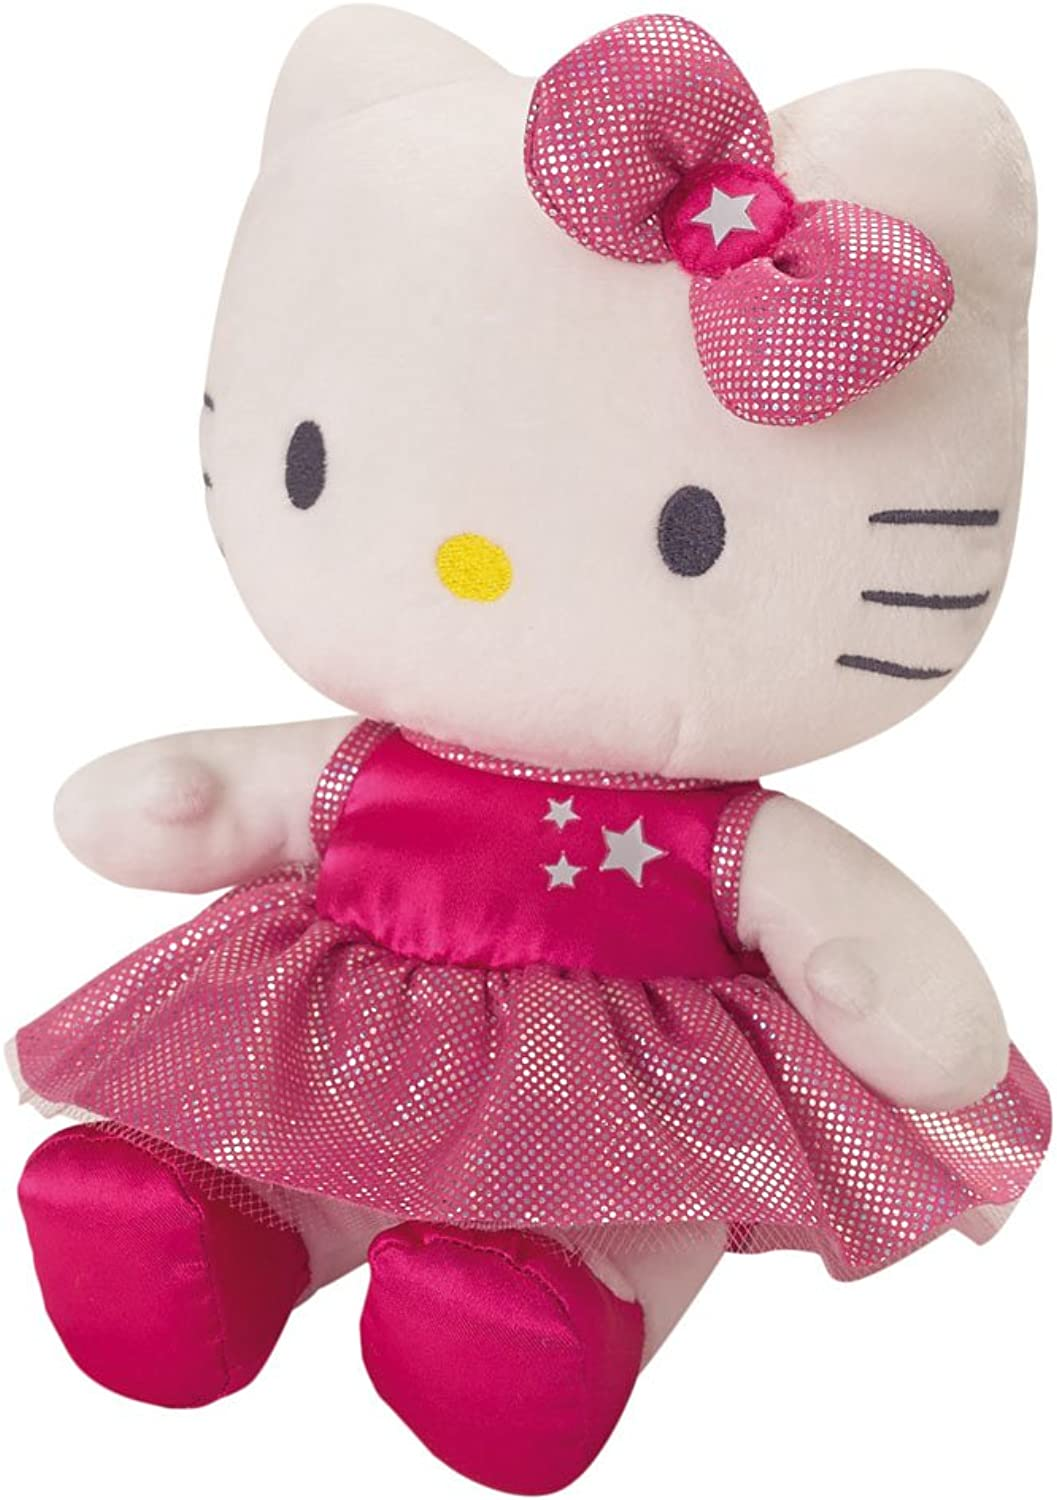 HELLO KITTY - Plush Dancer - Soft Toy by bluee Nose Friends